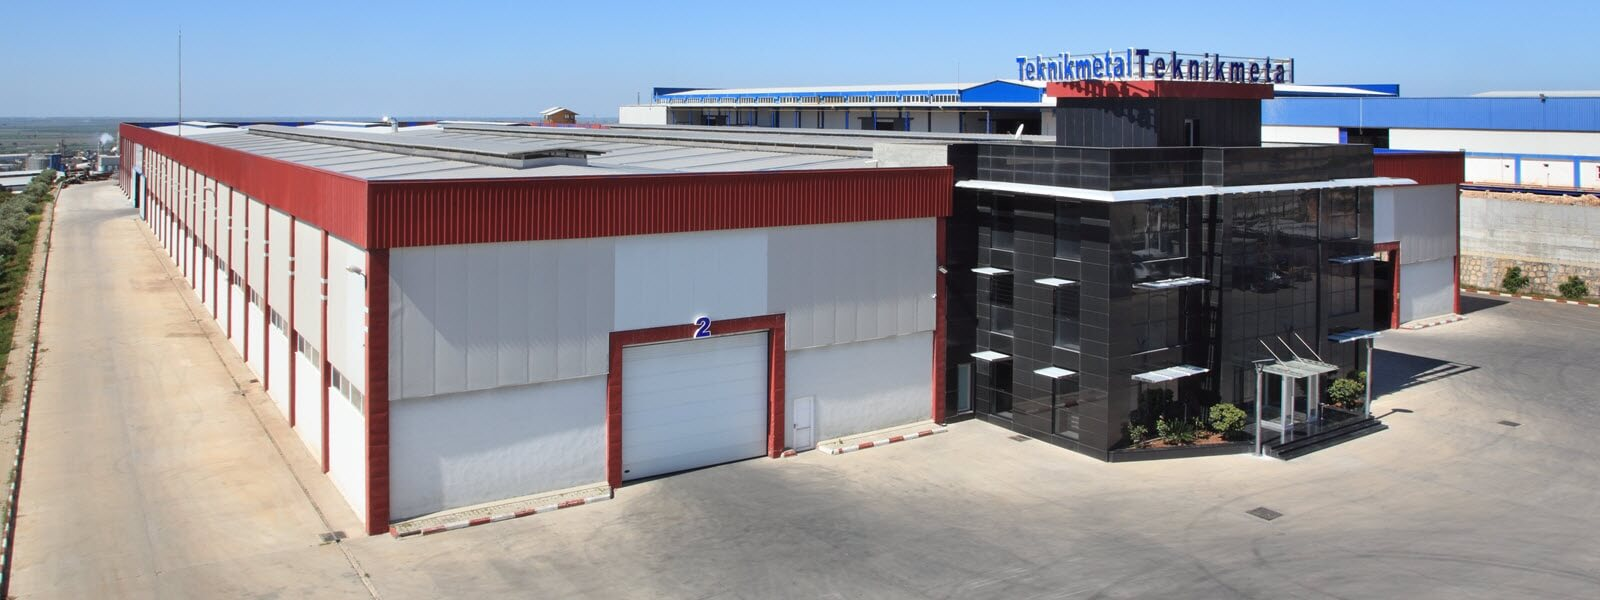 Stainless Steel Service Center